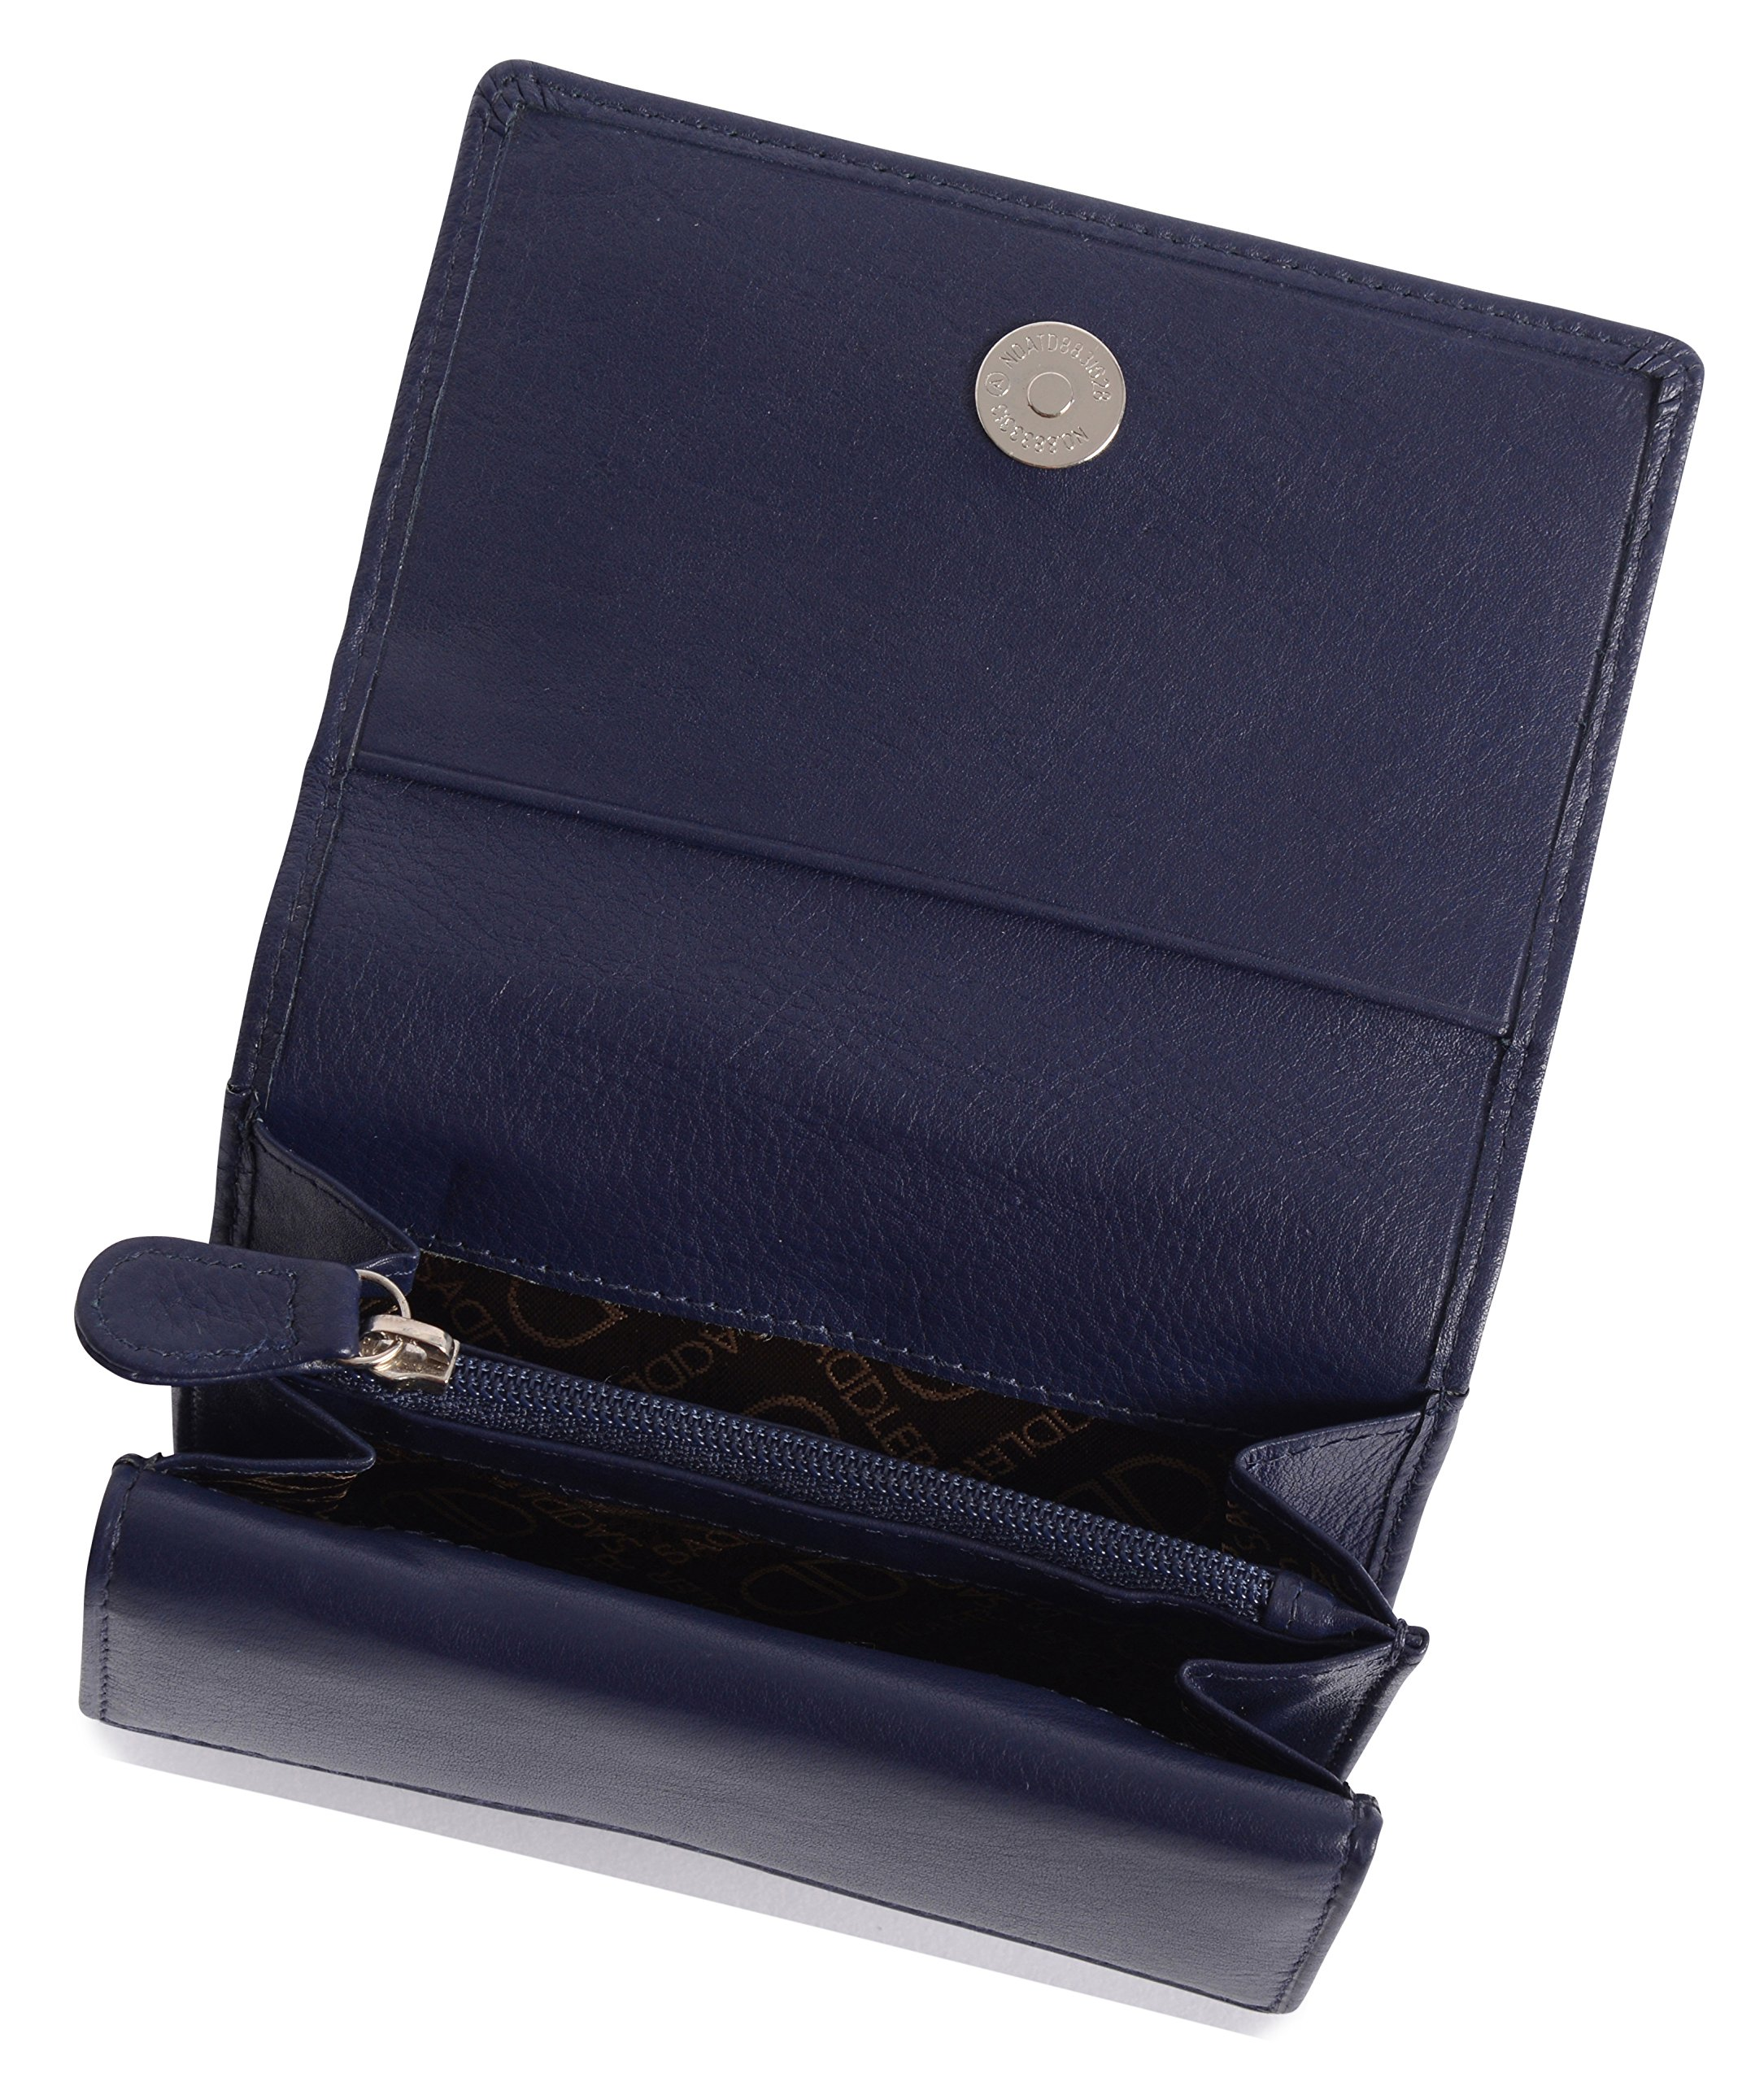 SADDLER Womens Leather Double Flap Coin Purse Trifold Wallet - Peacoat Blue by Saddler (Image #4)